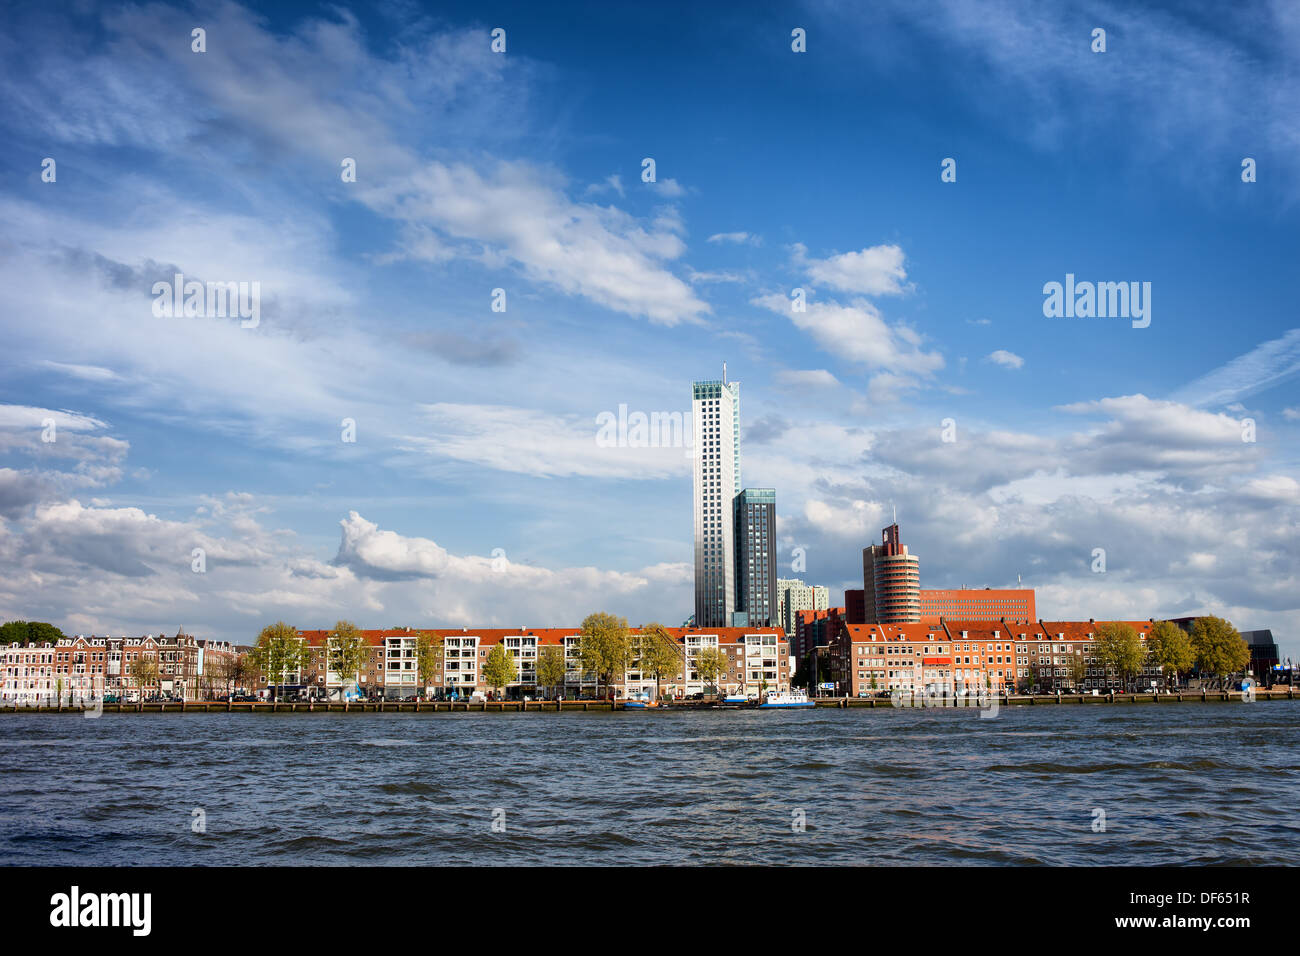 Terraced houses skyline along New Meuse (Dutch: Nieuwe Maas) river in Rotterdam city centre, Netherlands. Stock Photo